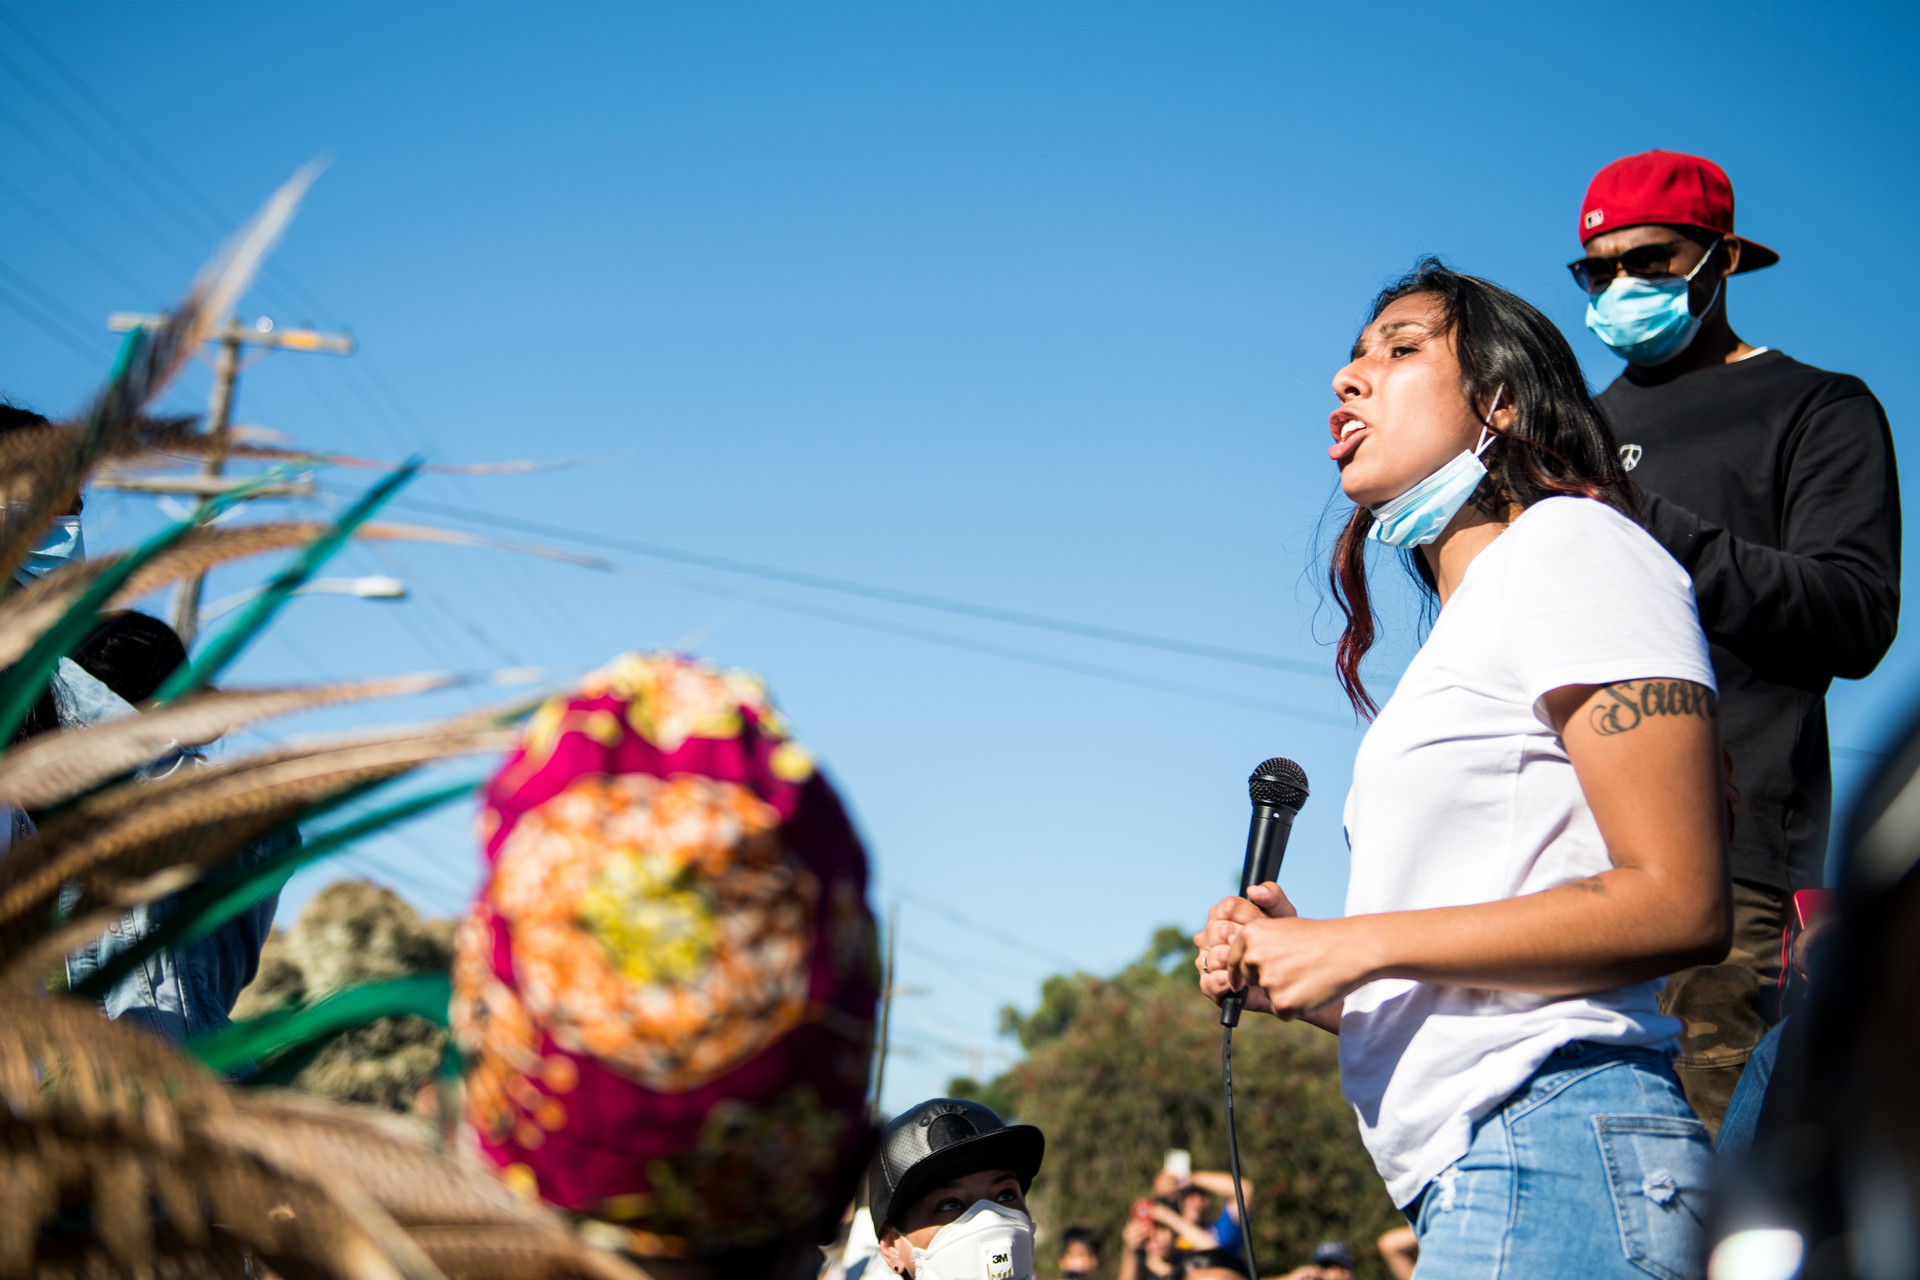 Erik Salgado's sister, Amanda Majail-Blanco, speaks during a march on June 8, 2020 in Oakland for her brother who was shot and killed by California Highway Patrol officers on June 6.